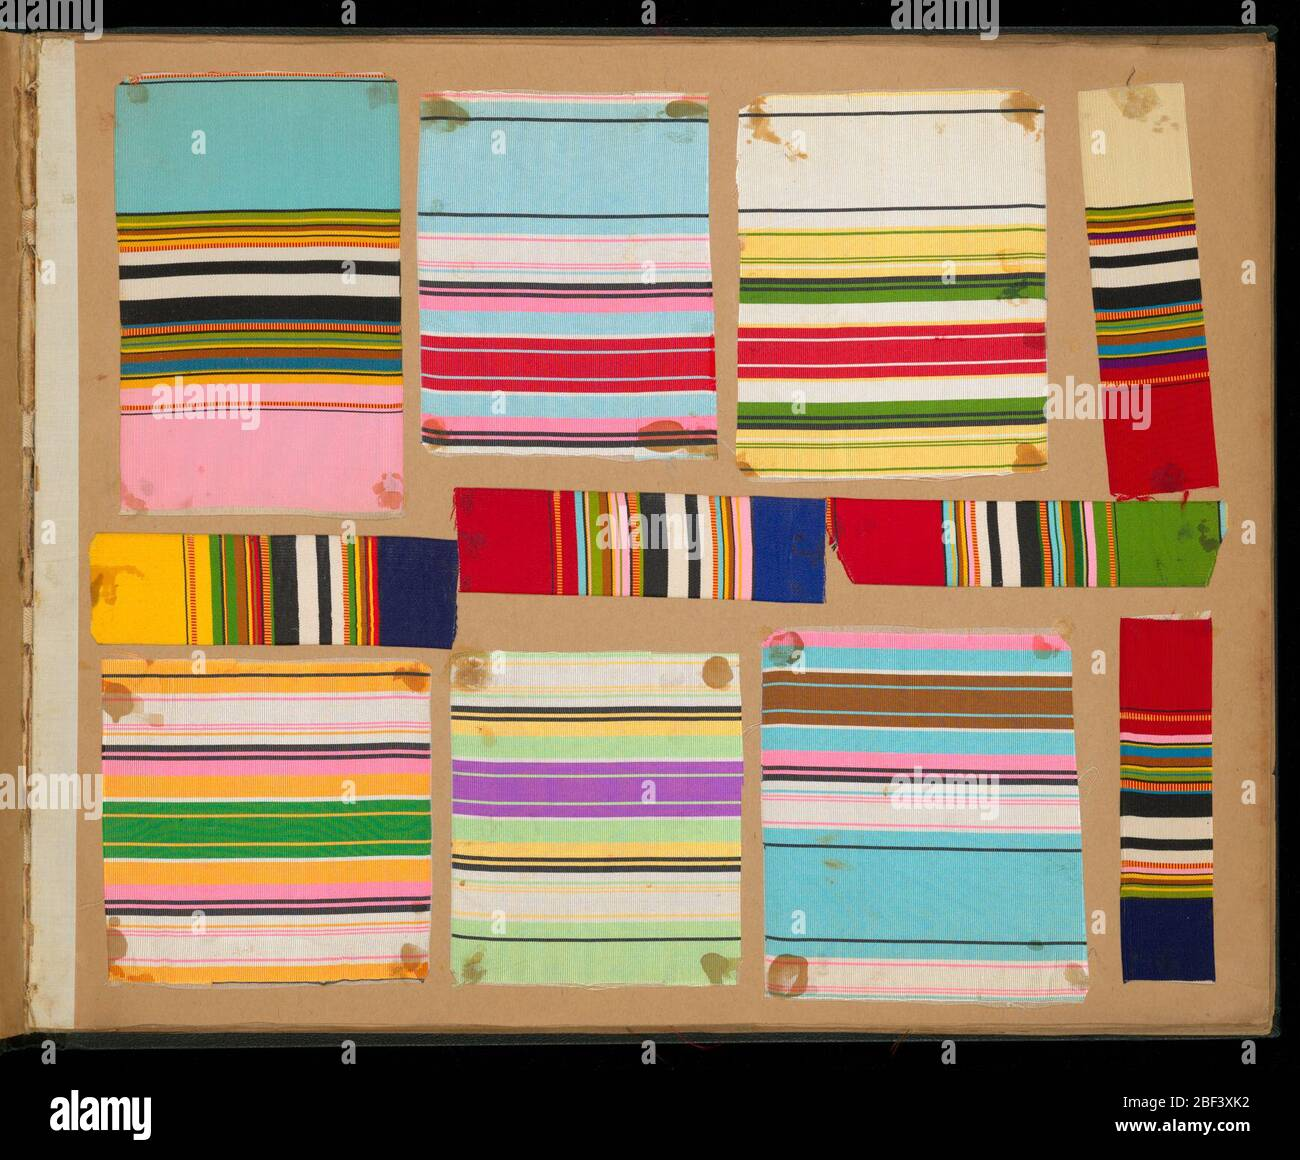 Sample book of woven ribbons. Sample book has 94 ribbon samples with stripes in various colors: 288 checks, 243 samples in plain cloth, moiré, chiné, and rep; 92 with fancy woven border; 11 with short fringes; 100 with jaquard weaves; 2 woven labels; 3 small flags. Stock Photo